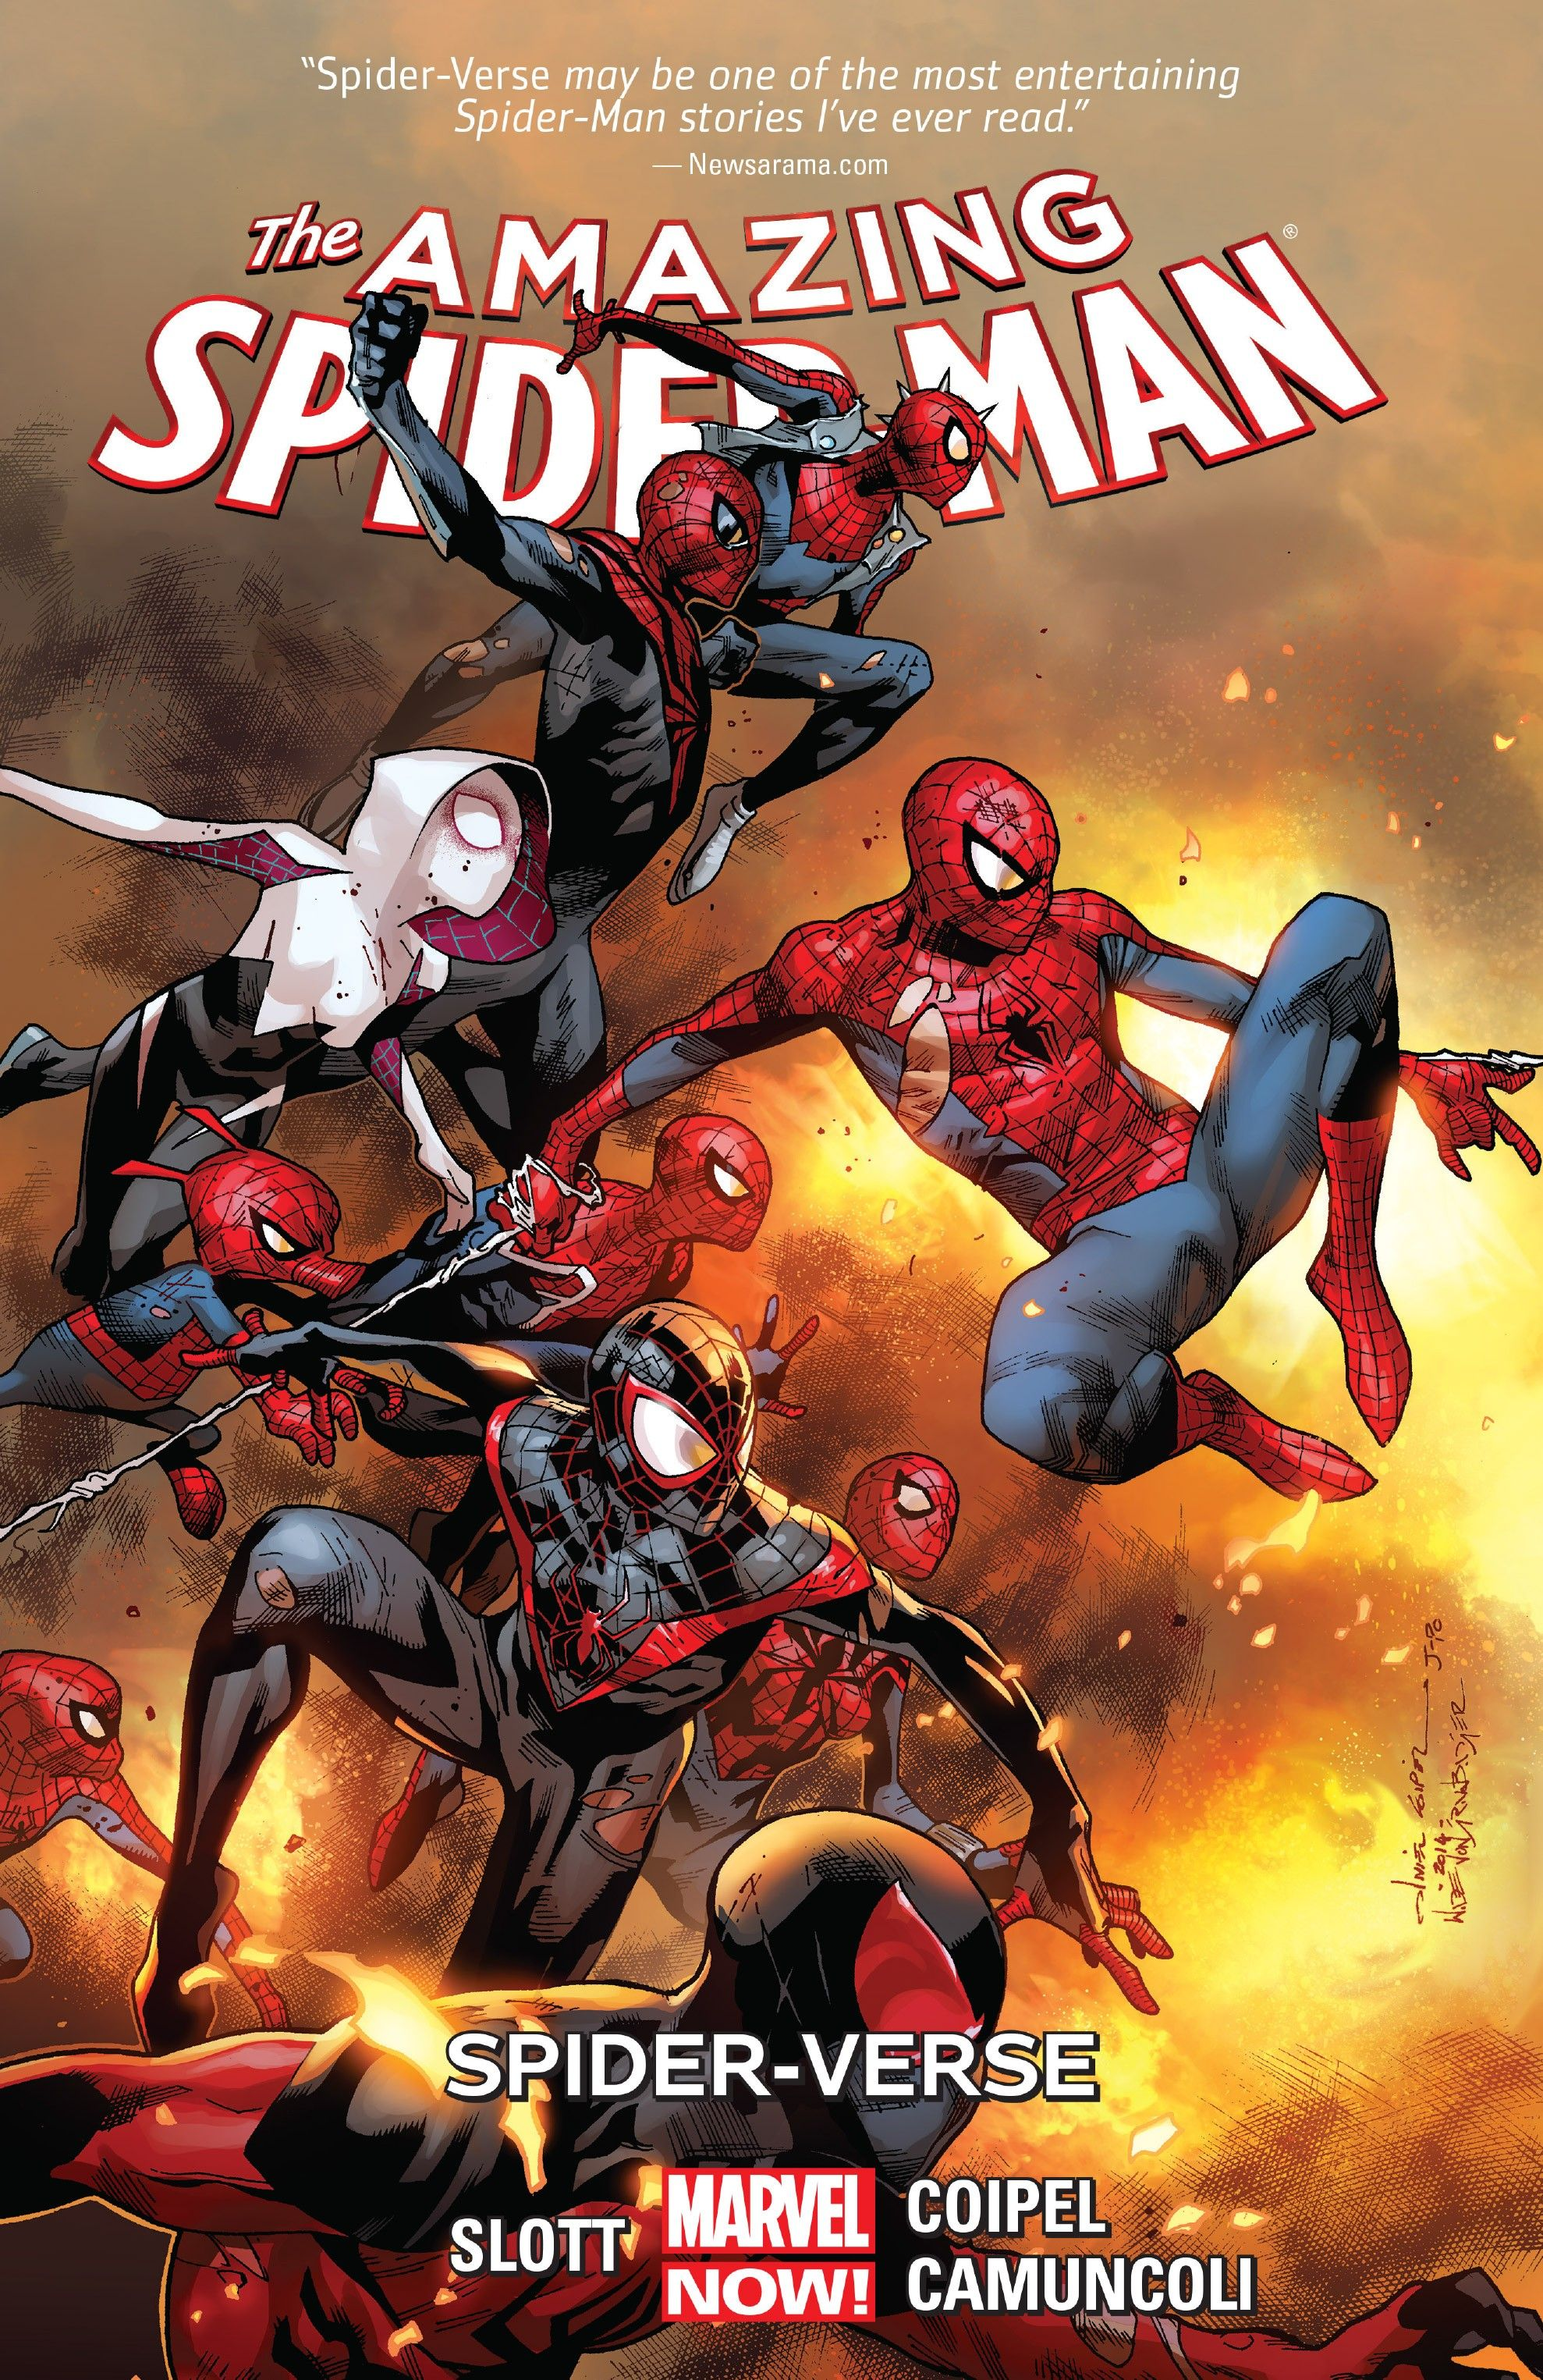 Different versions of spider-man against explosion